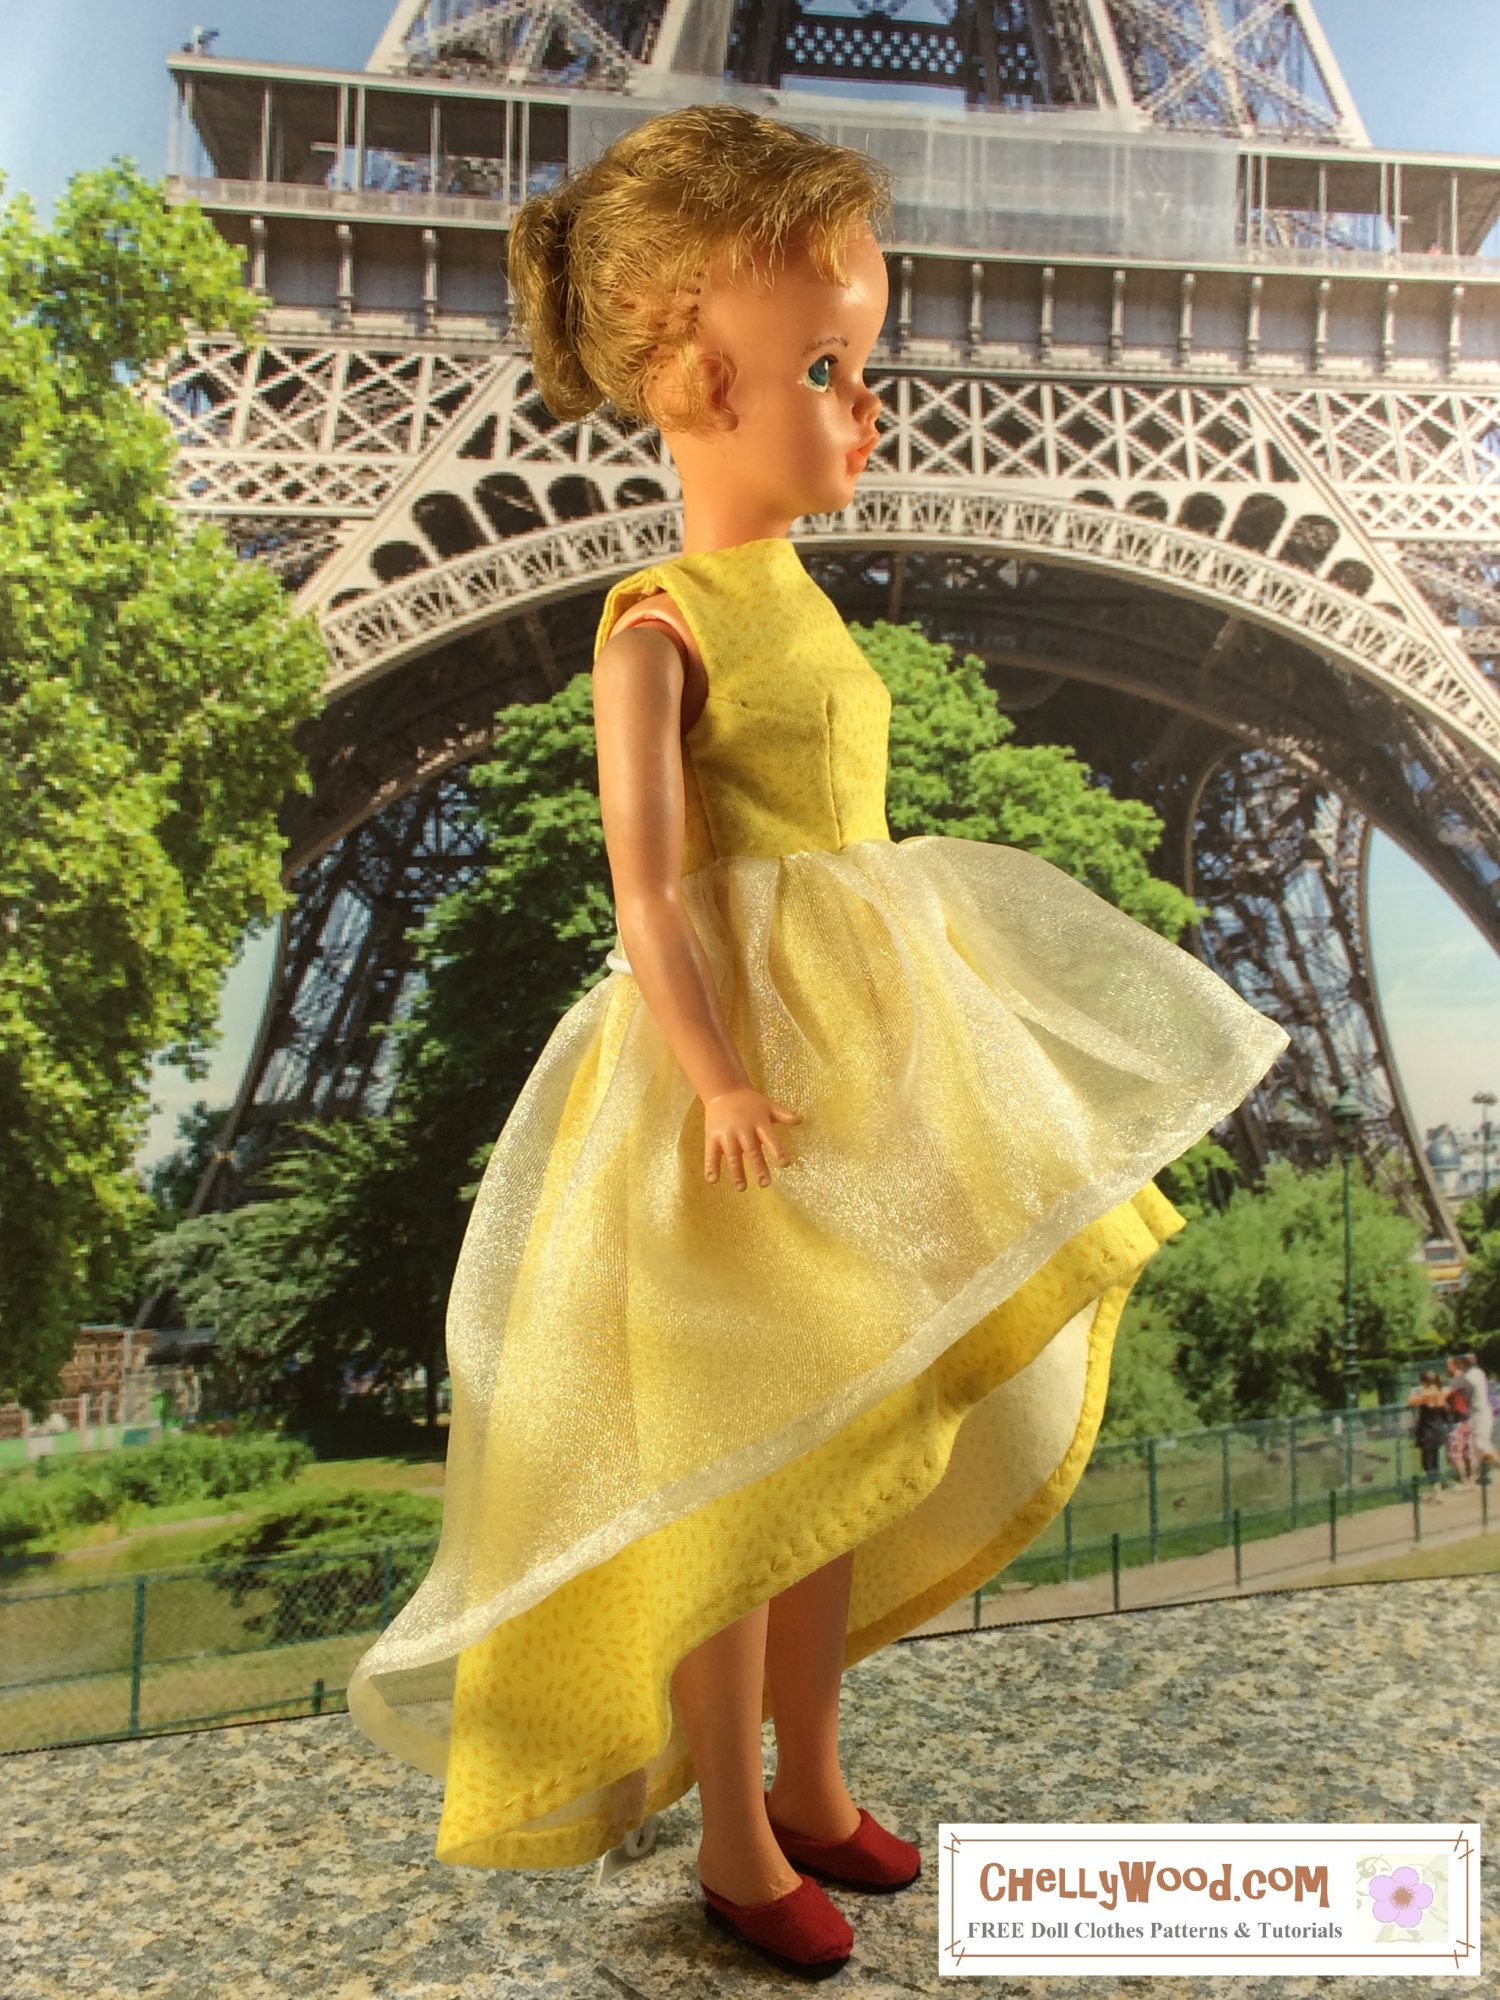 A vintage Tammy doll stands in profile with the Eiffel tower rising behind her. There's a park between Tammy and the towering emblem of France. Tammy has her short hair pulled back into a tiny pony tail with one blond curl sweeping around her tiny doll sized ear. She wears a yellow high low dress (short in front long in back) with a sleeveless bodice and a glistening layer of tulle over the top of the yellow skirt.